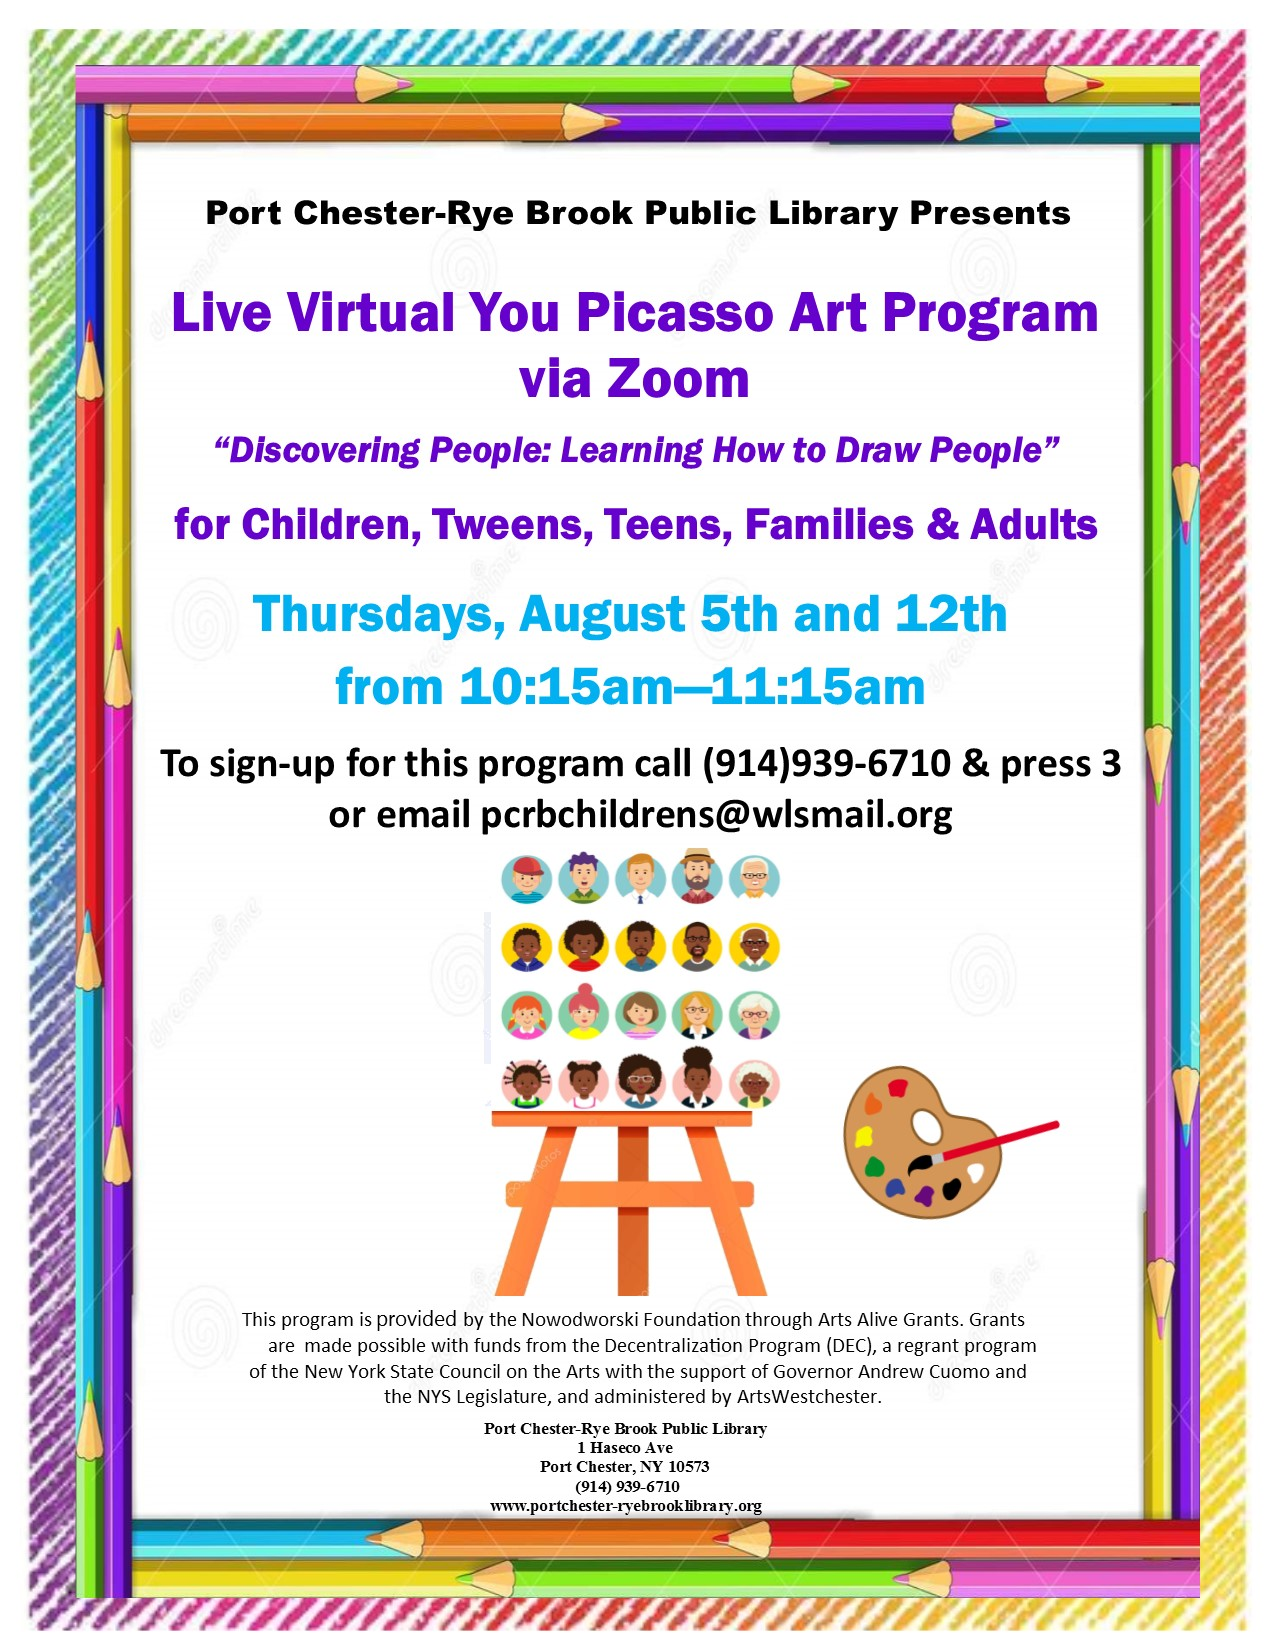 """Live Zoom """"You Picasso Art Program"""" at Port Chester-Rye Brook Public Library"""